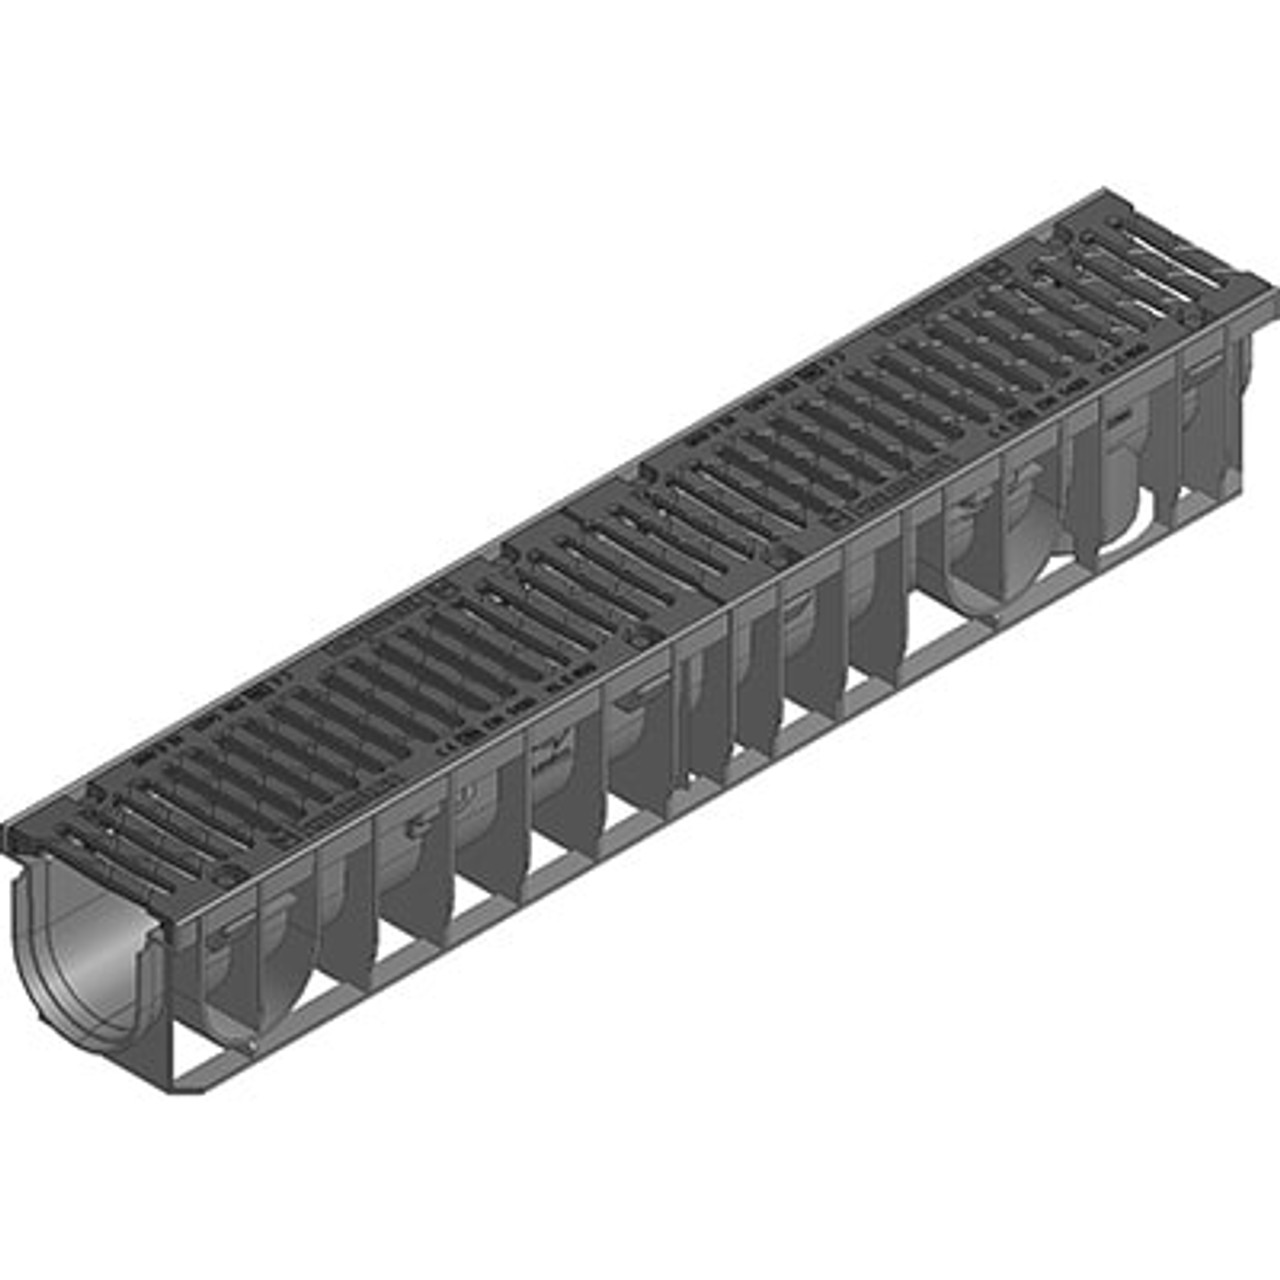 RECYFIX NC 100 channel drain with ductile iron grating. E600 loading.